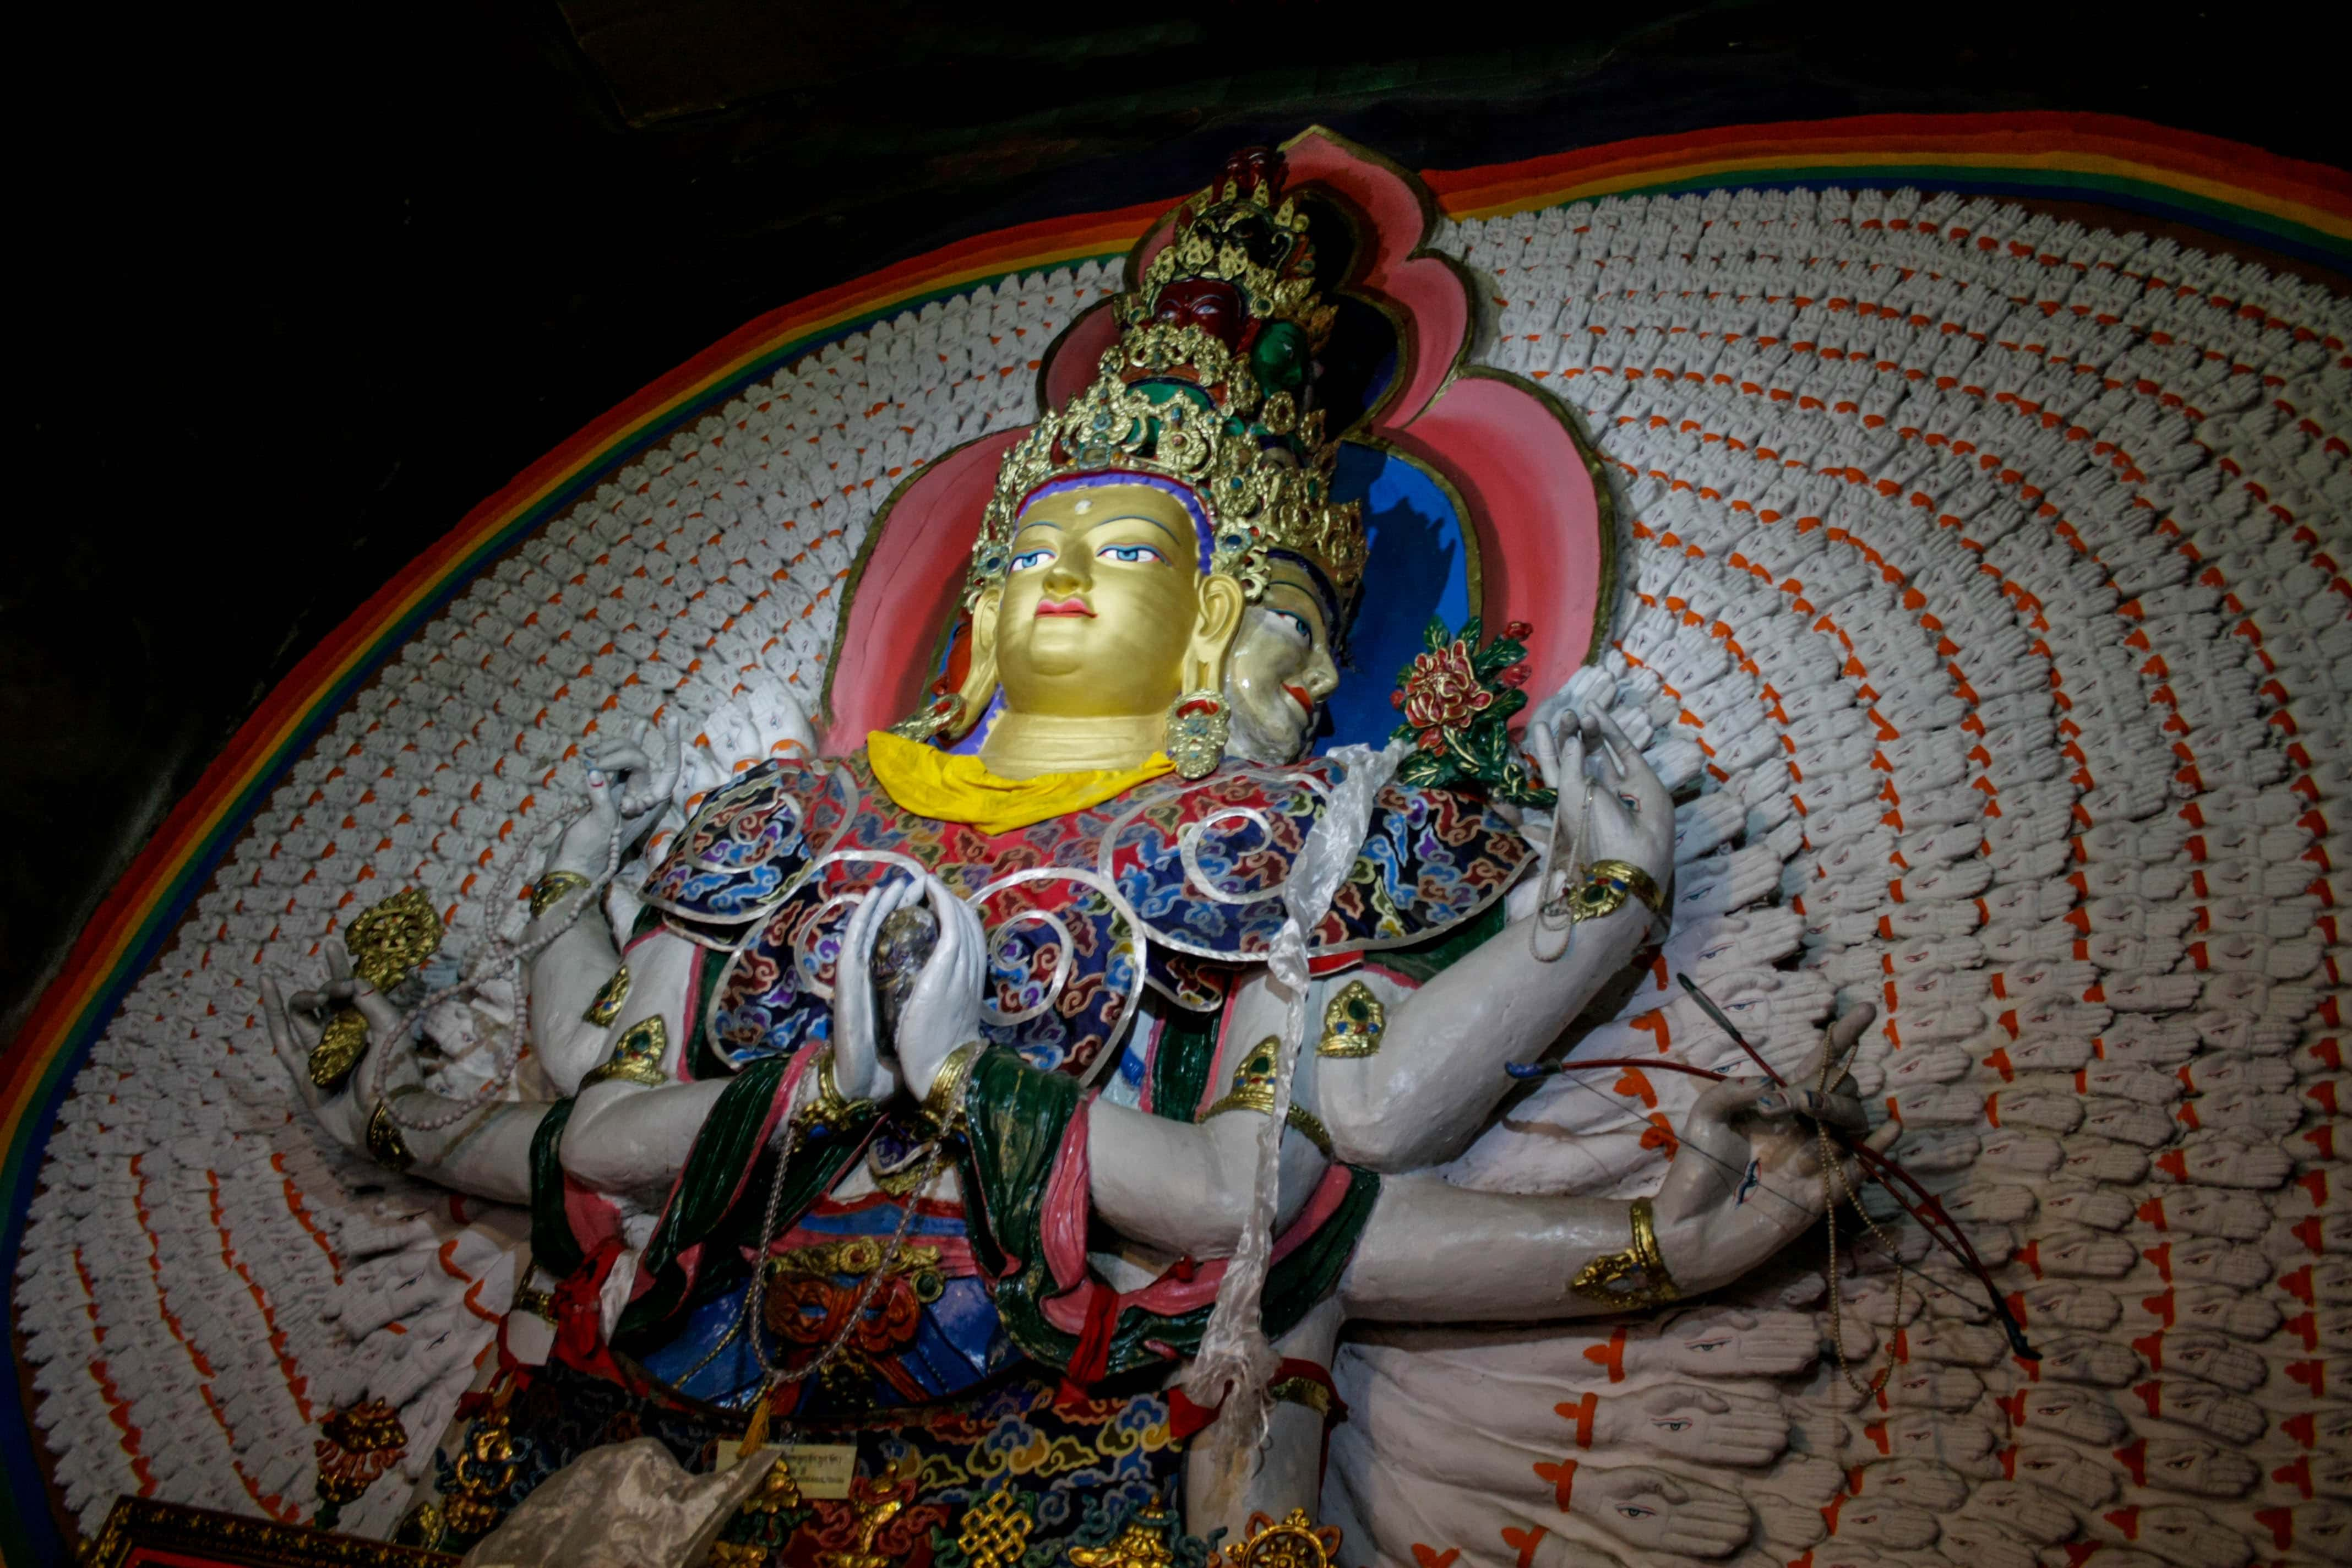 Statue of Thousand arms and eyes compassion Buddha Chenrezig in Samye monastery